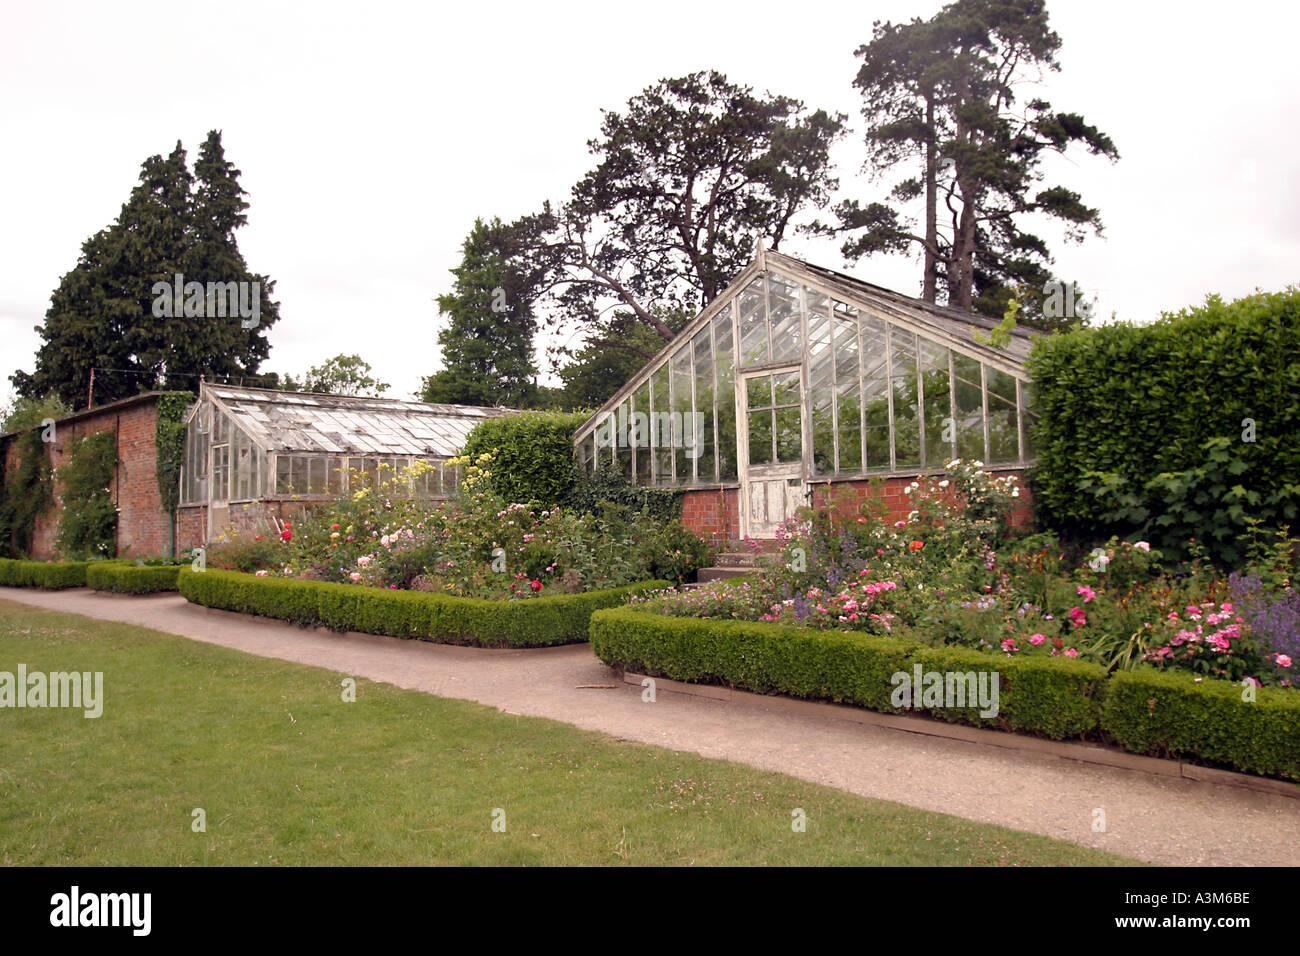 Museum of Welsh Life Cardiff St Fagans  Victorian Green house in the garden - Stock Image